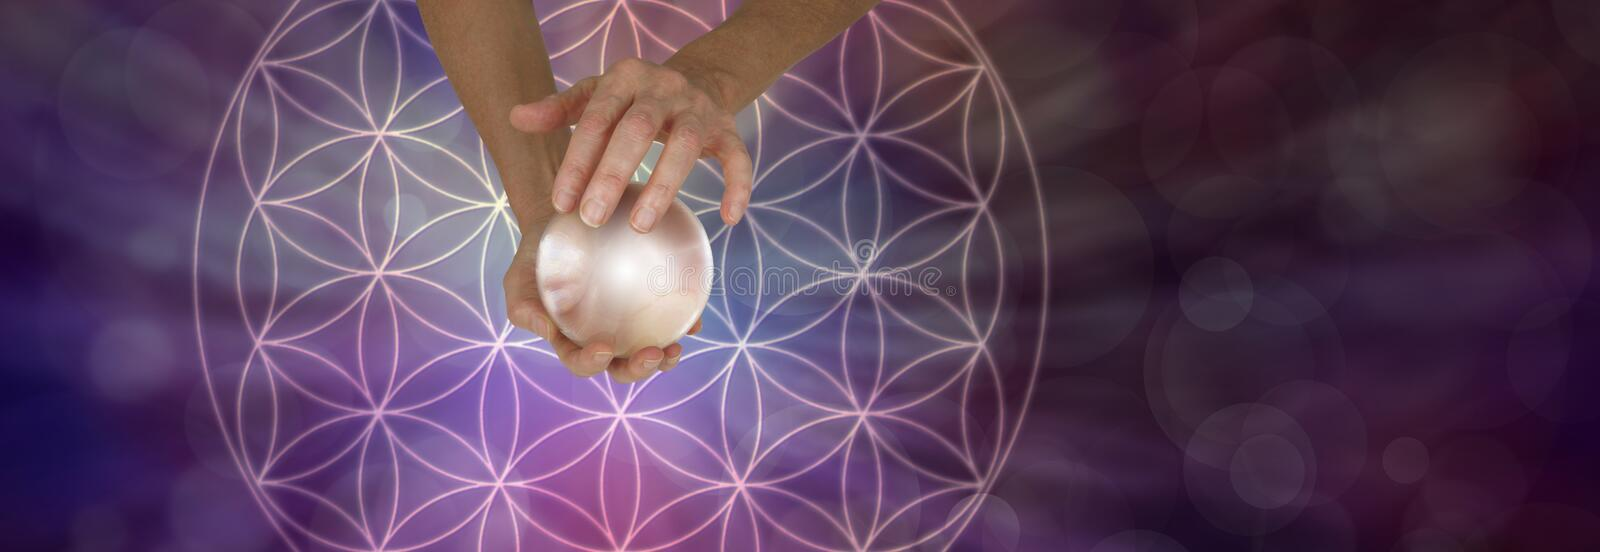 Sacred Geometry and Crystal Ball Scrying royalty free stock images